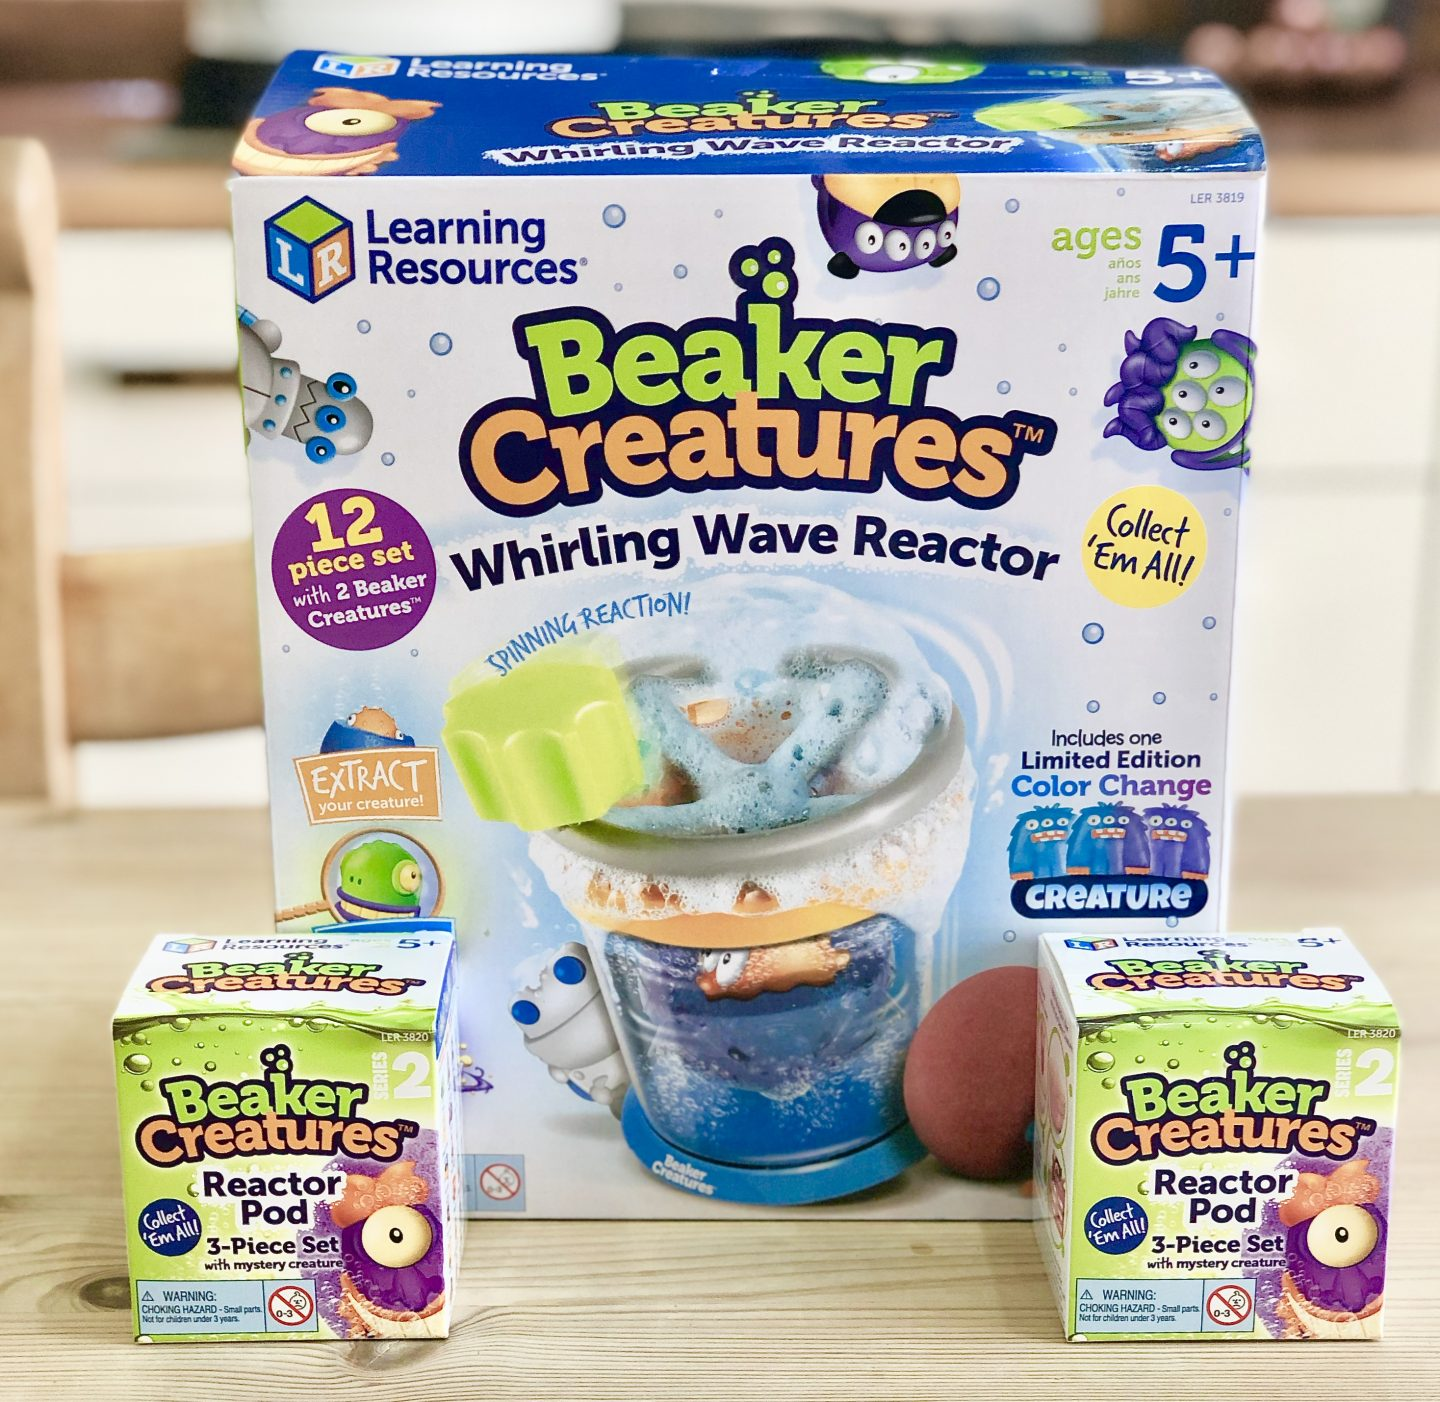 Learning Resources – Beakers Creatures Whirling Wave Reactor Review